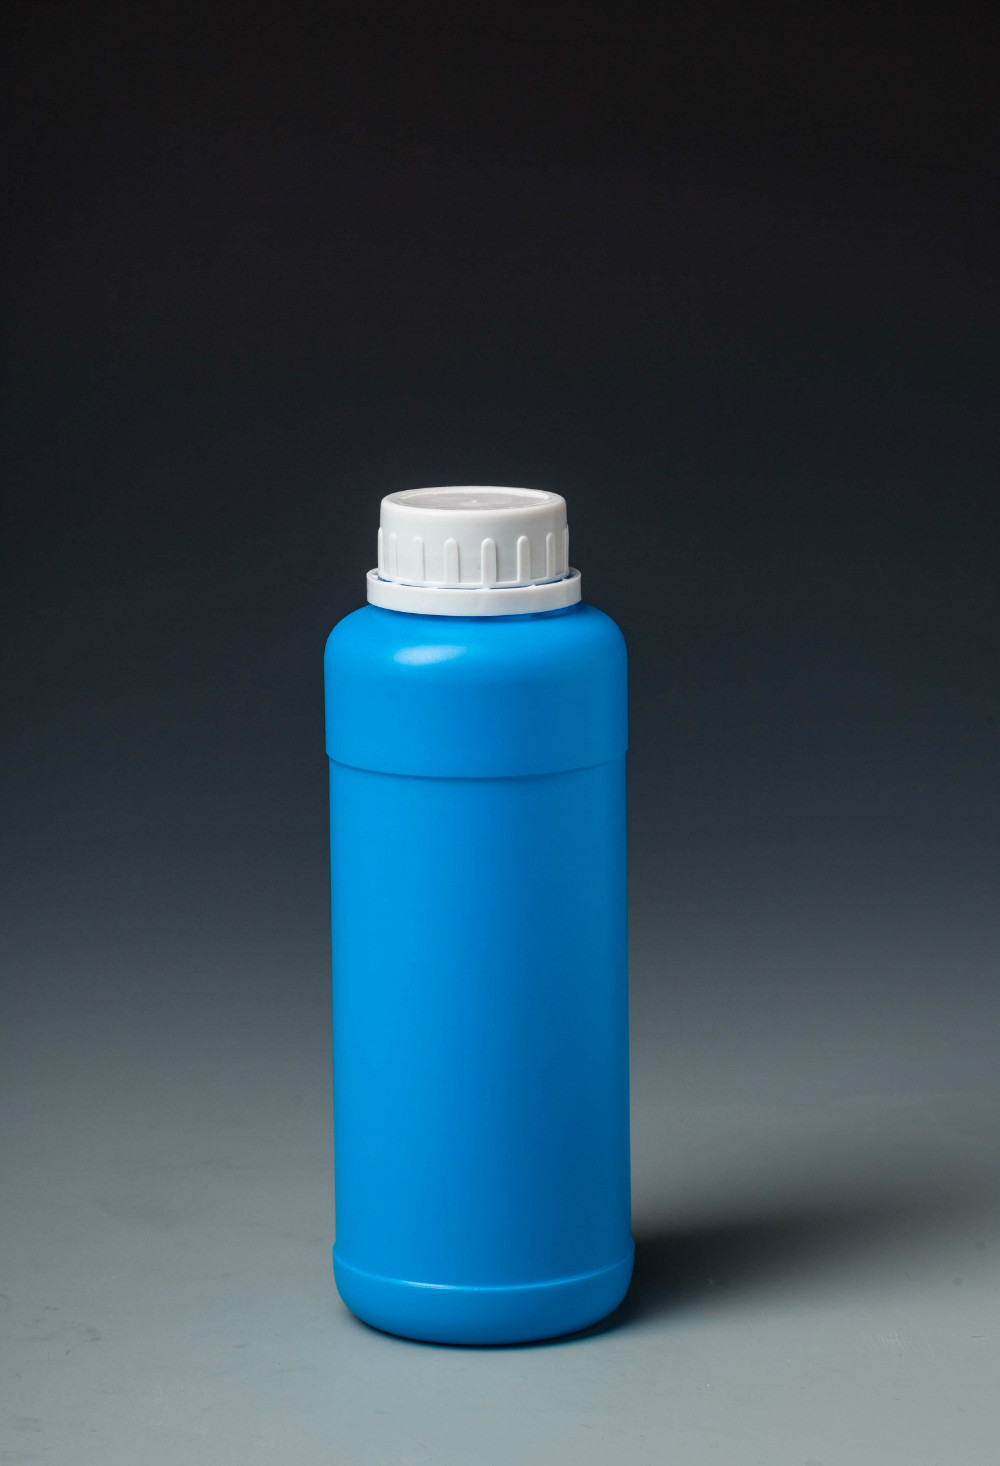 500ml Hdpe Chemical Liquid Veterinary Medicine Liquid Bottle